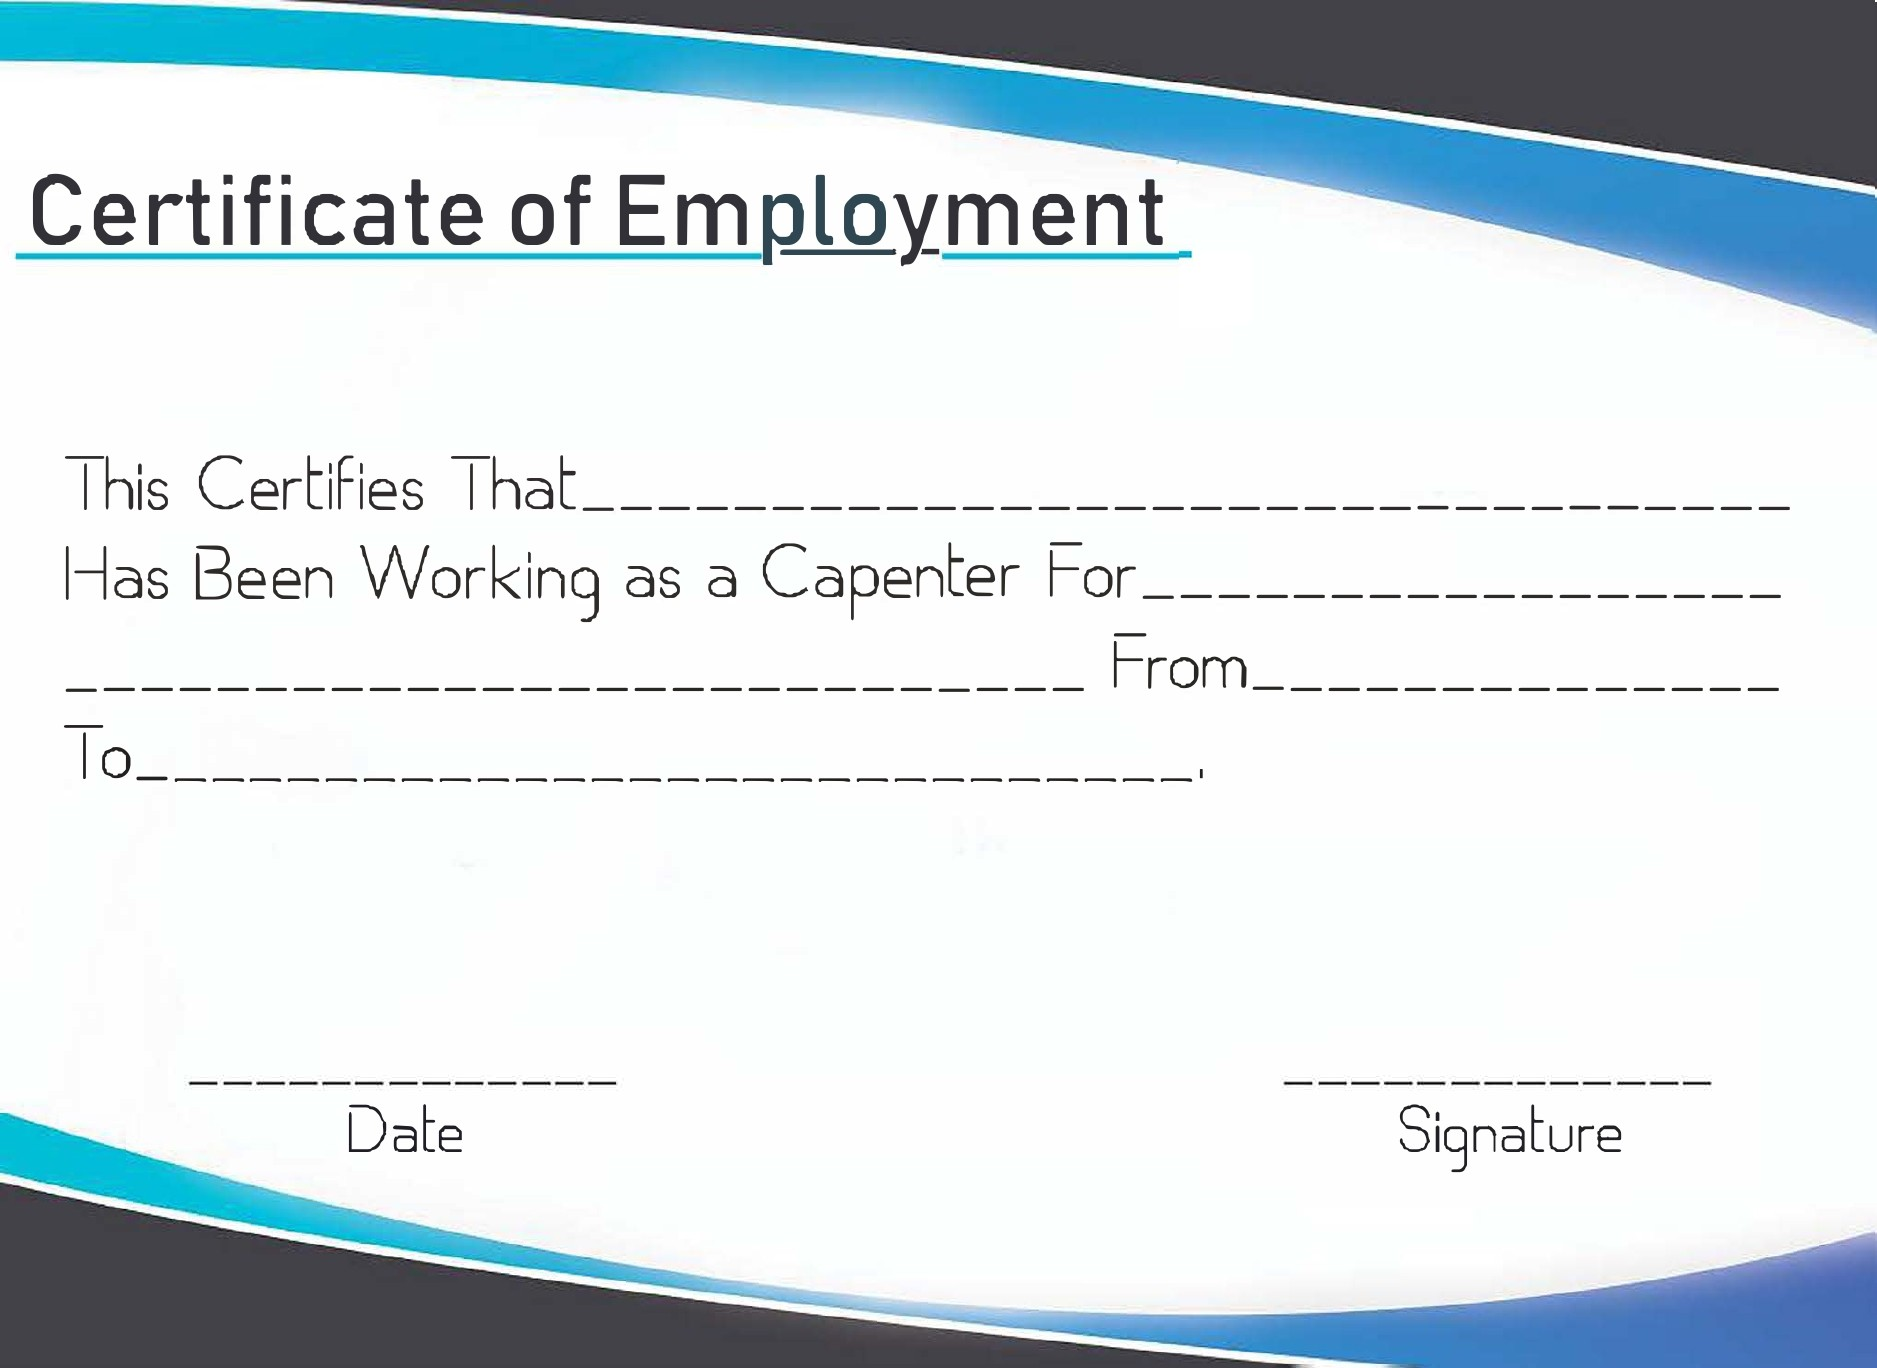 Free certificate of employment 03